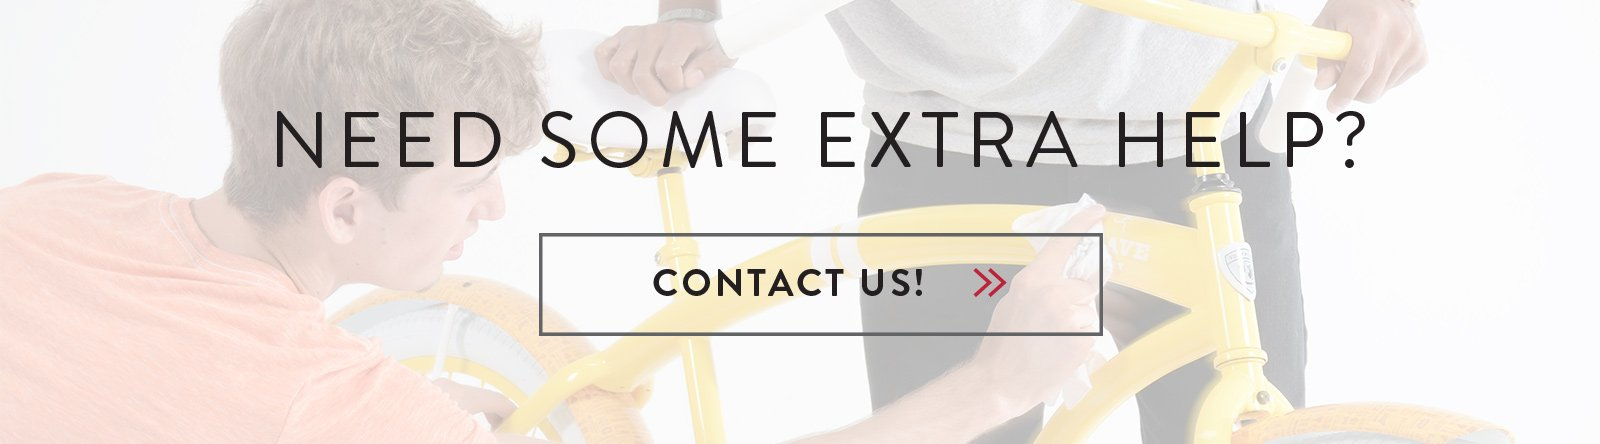 Need some extra help - Contact Us!